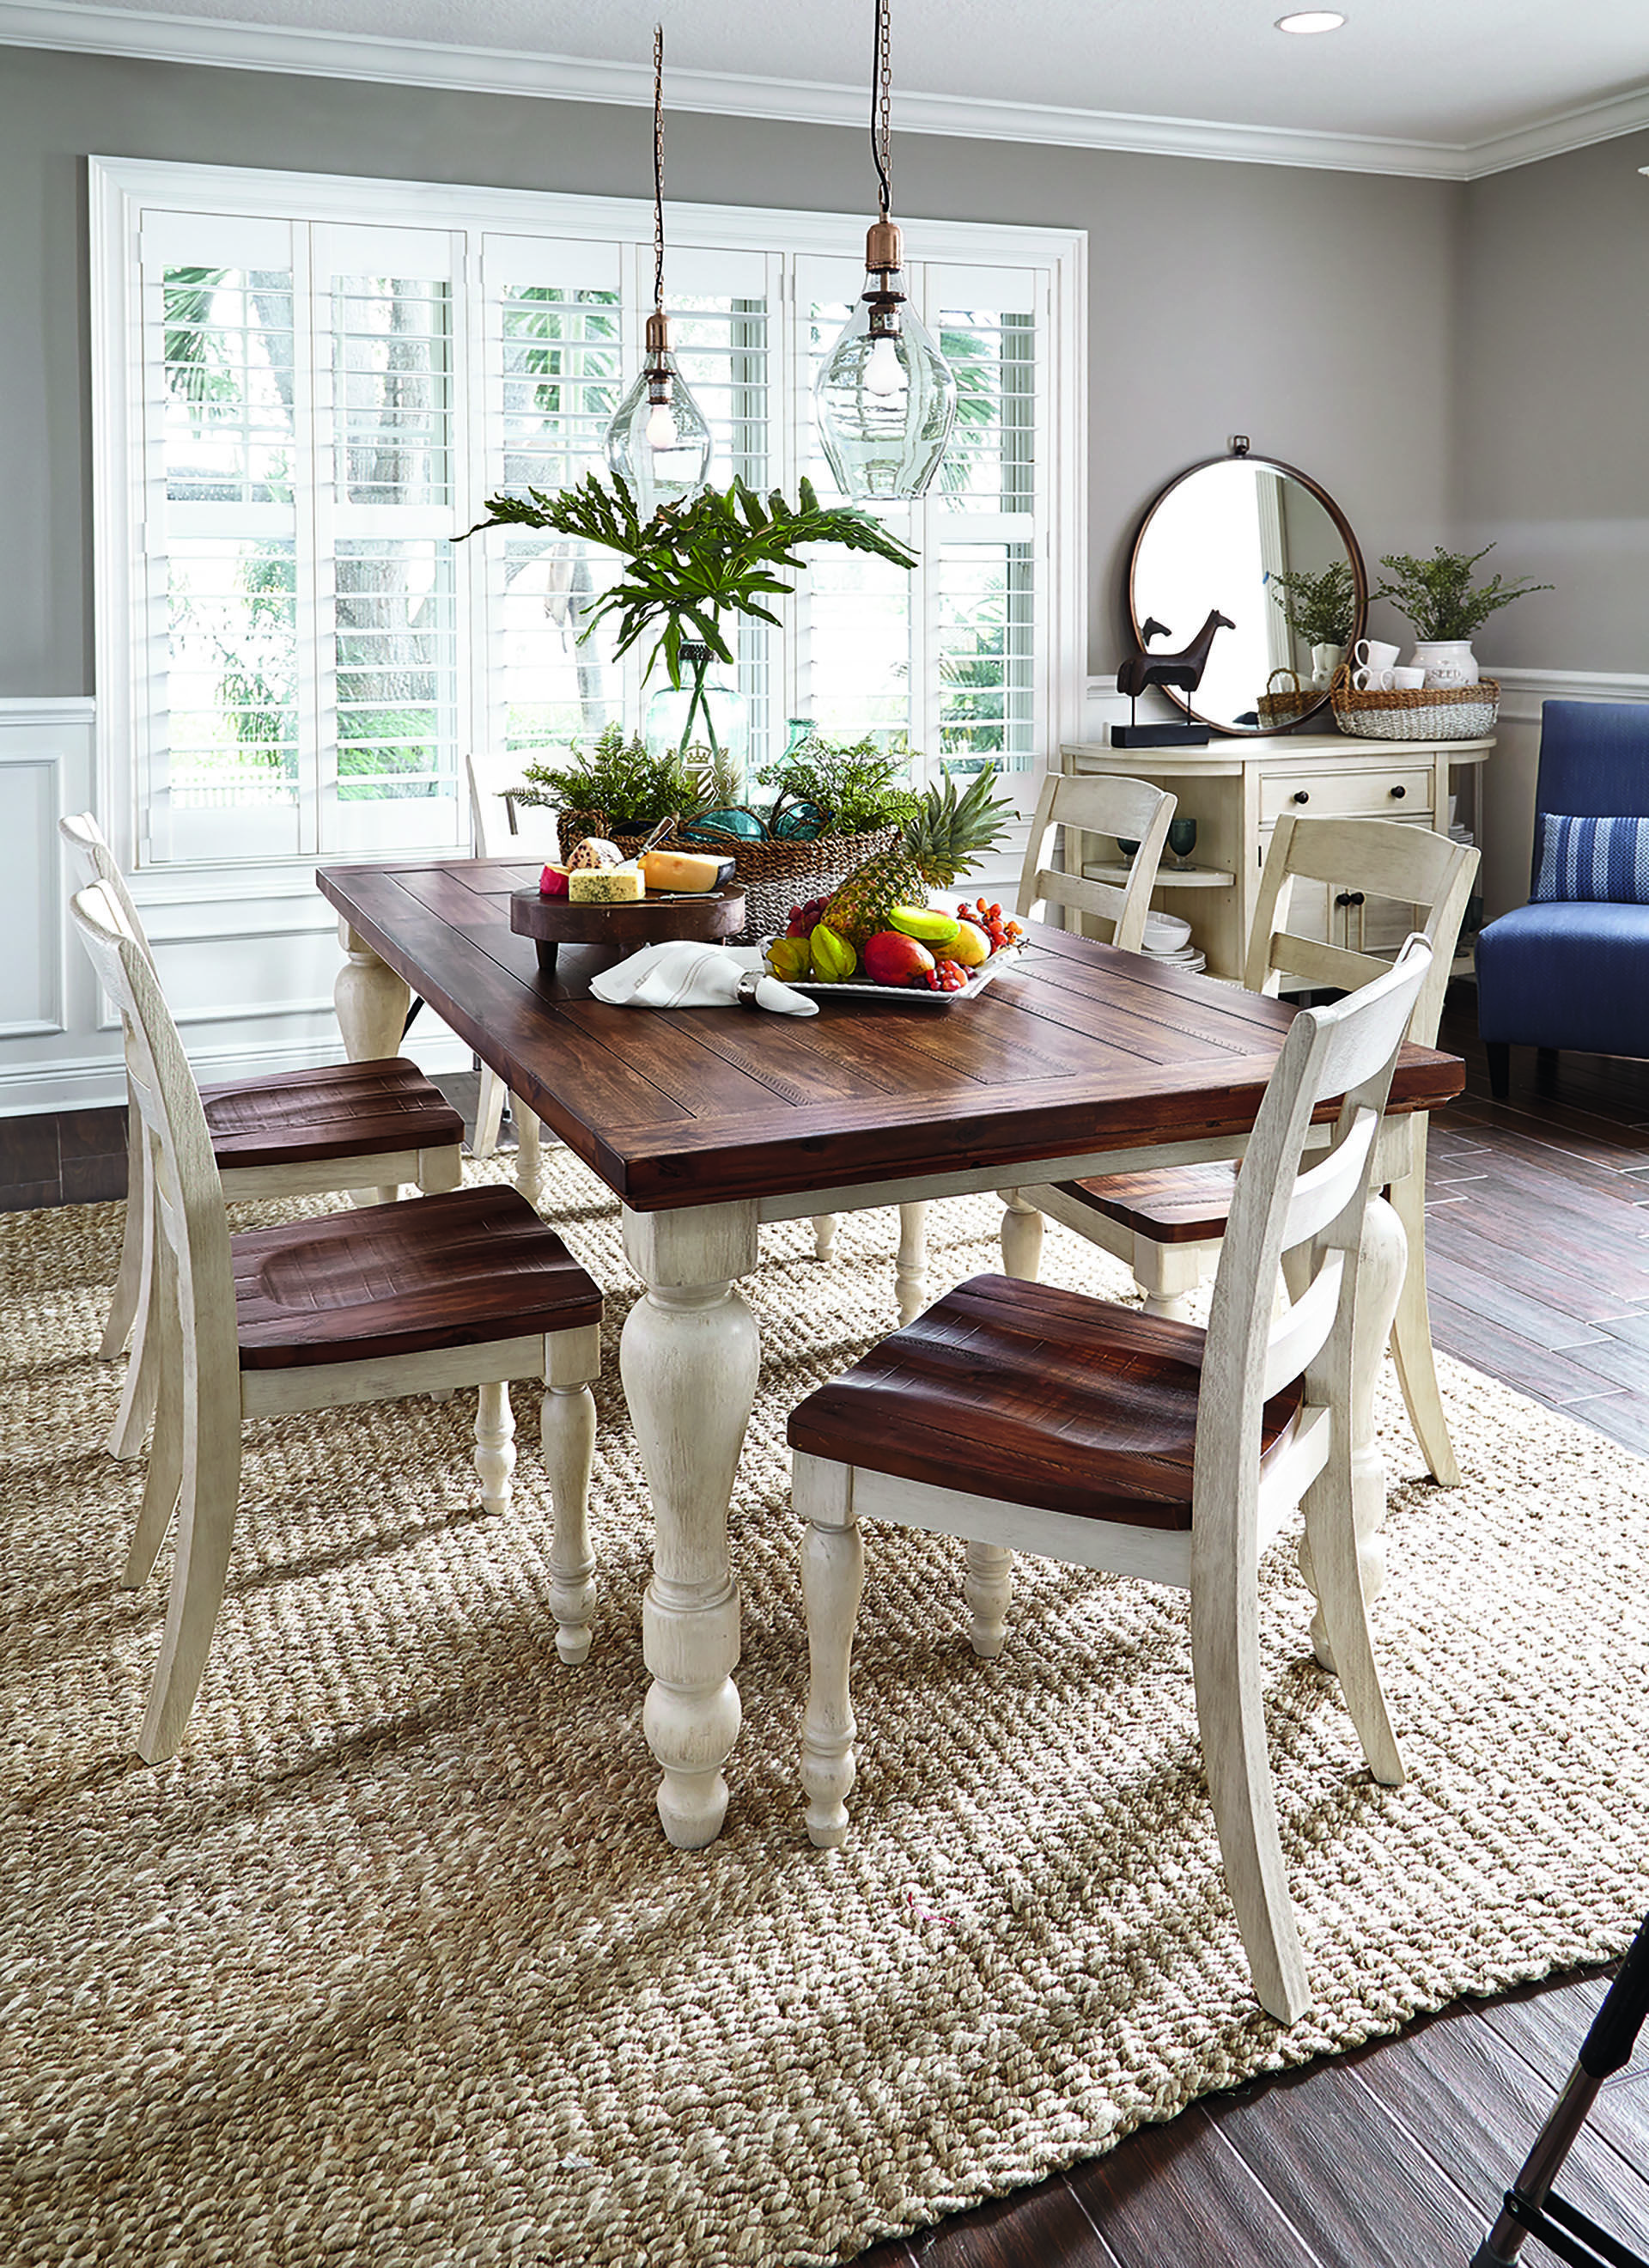 Farmhouse Dining Table Ideas For Cozy, Rustic Look   DIY Home Art Pictures